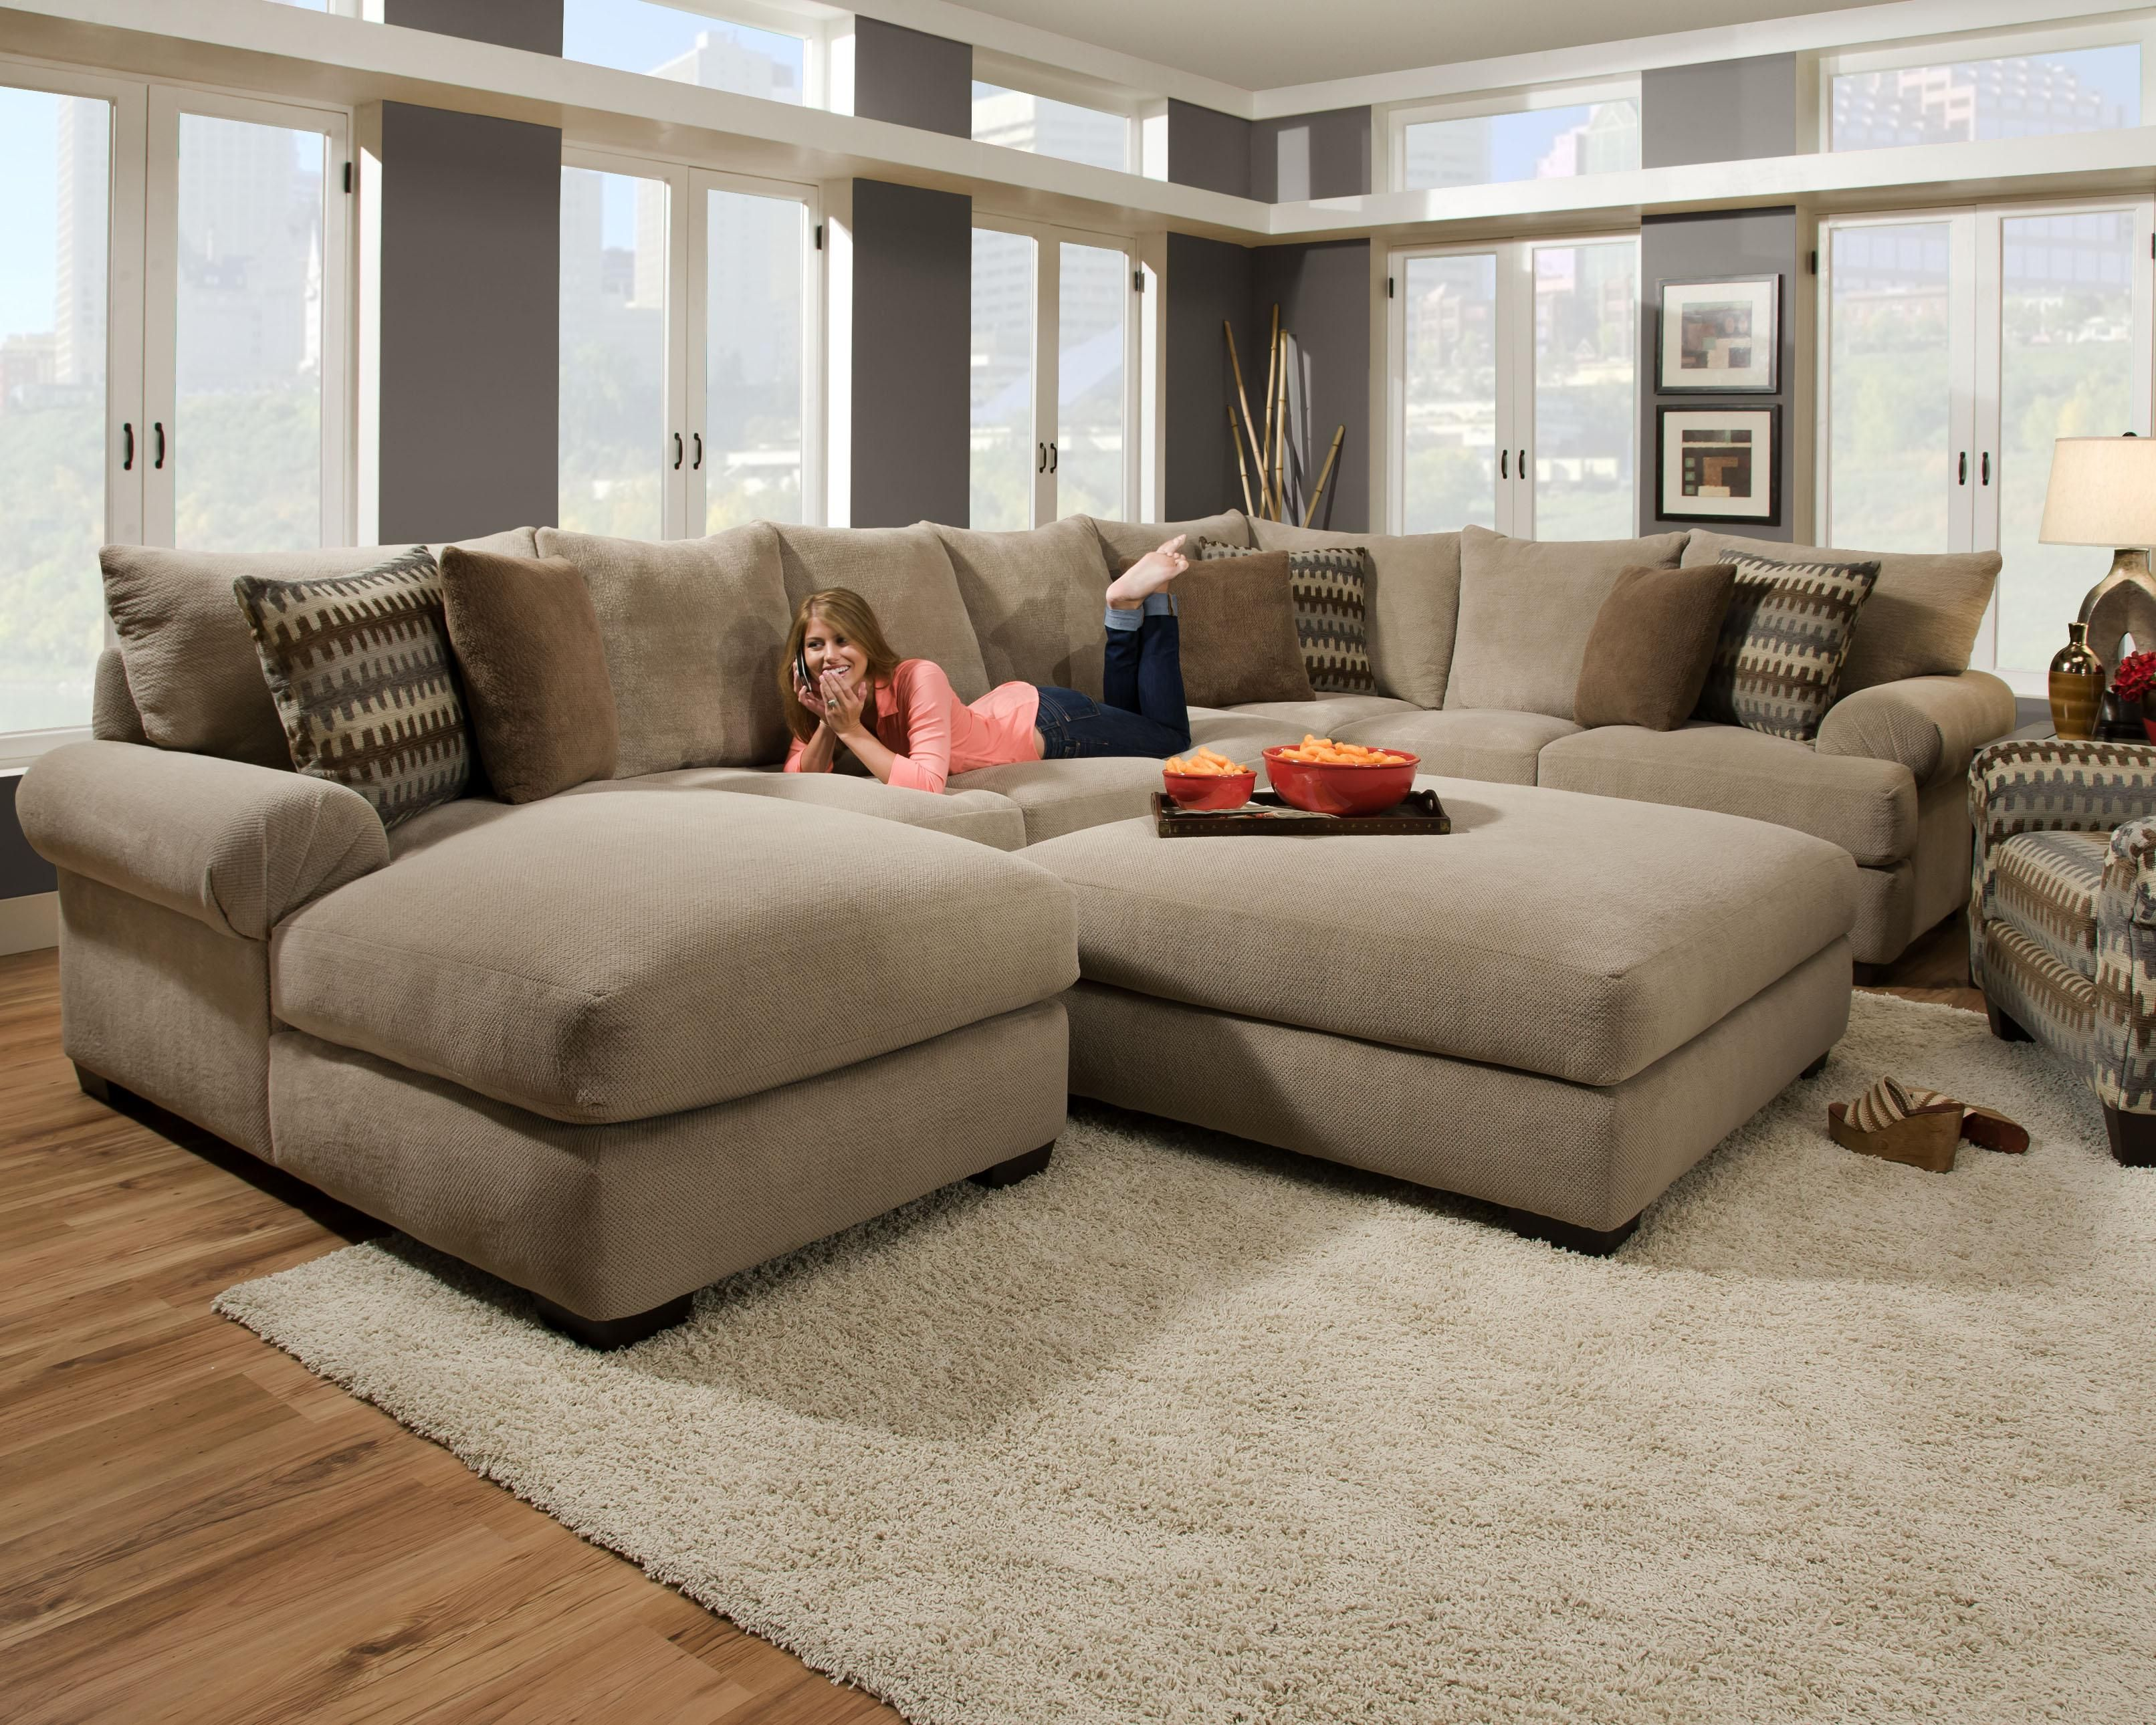 Contemporary Sectional Sofas for Living Room Furniture Ideas